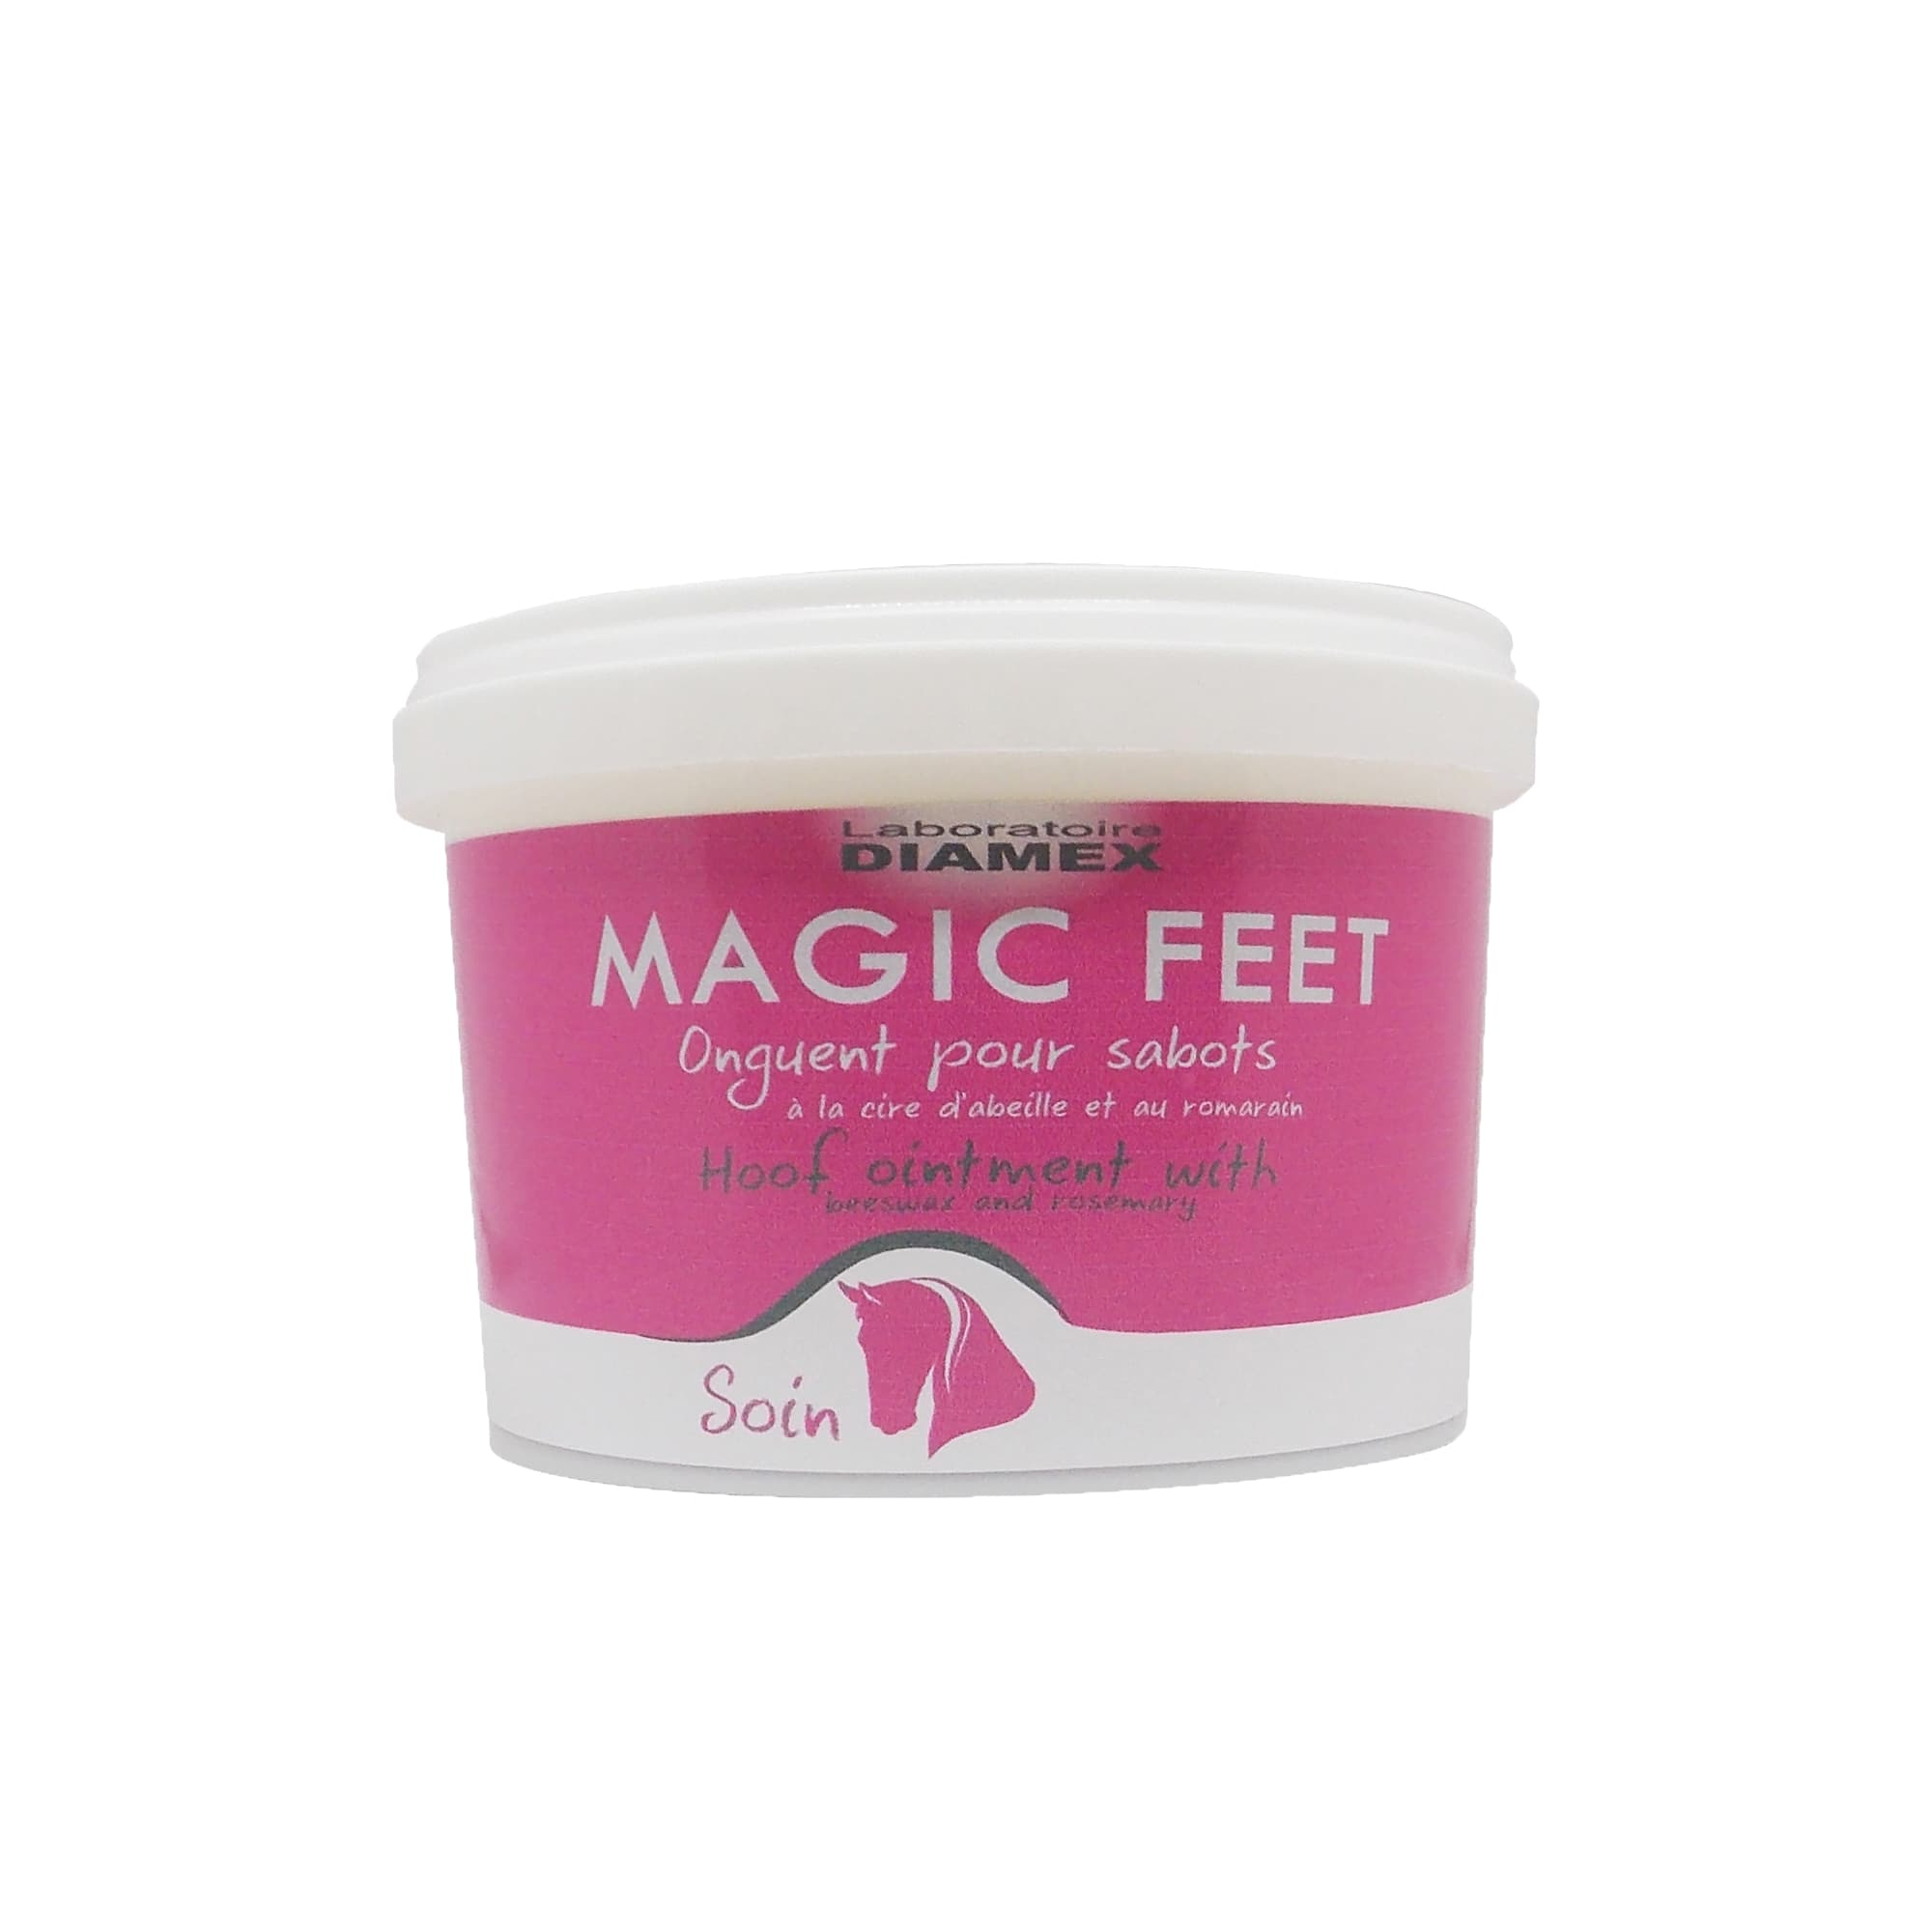 Soins des sabots Diamex Magic Feet